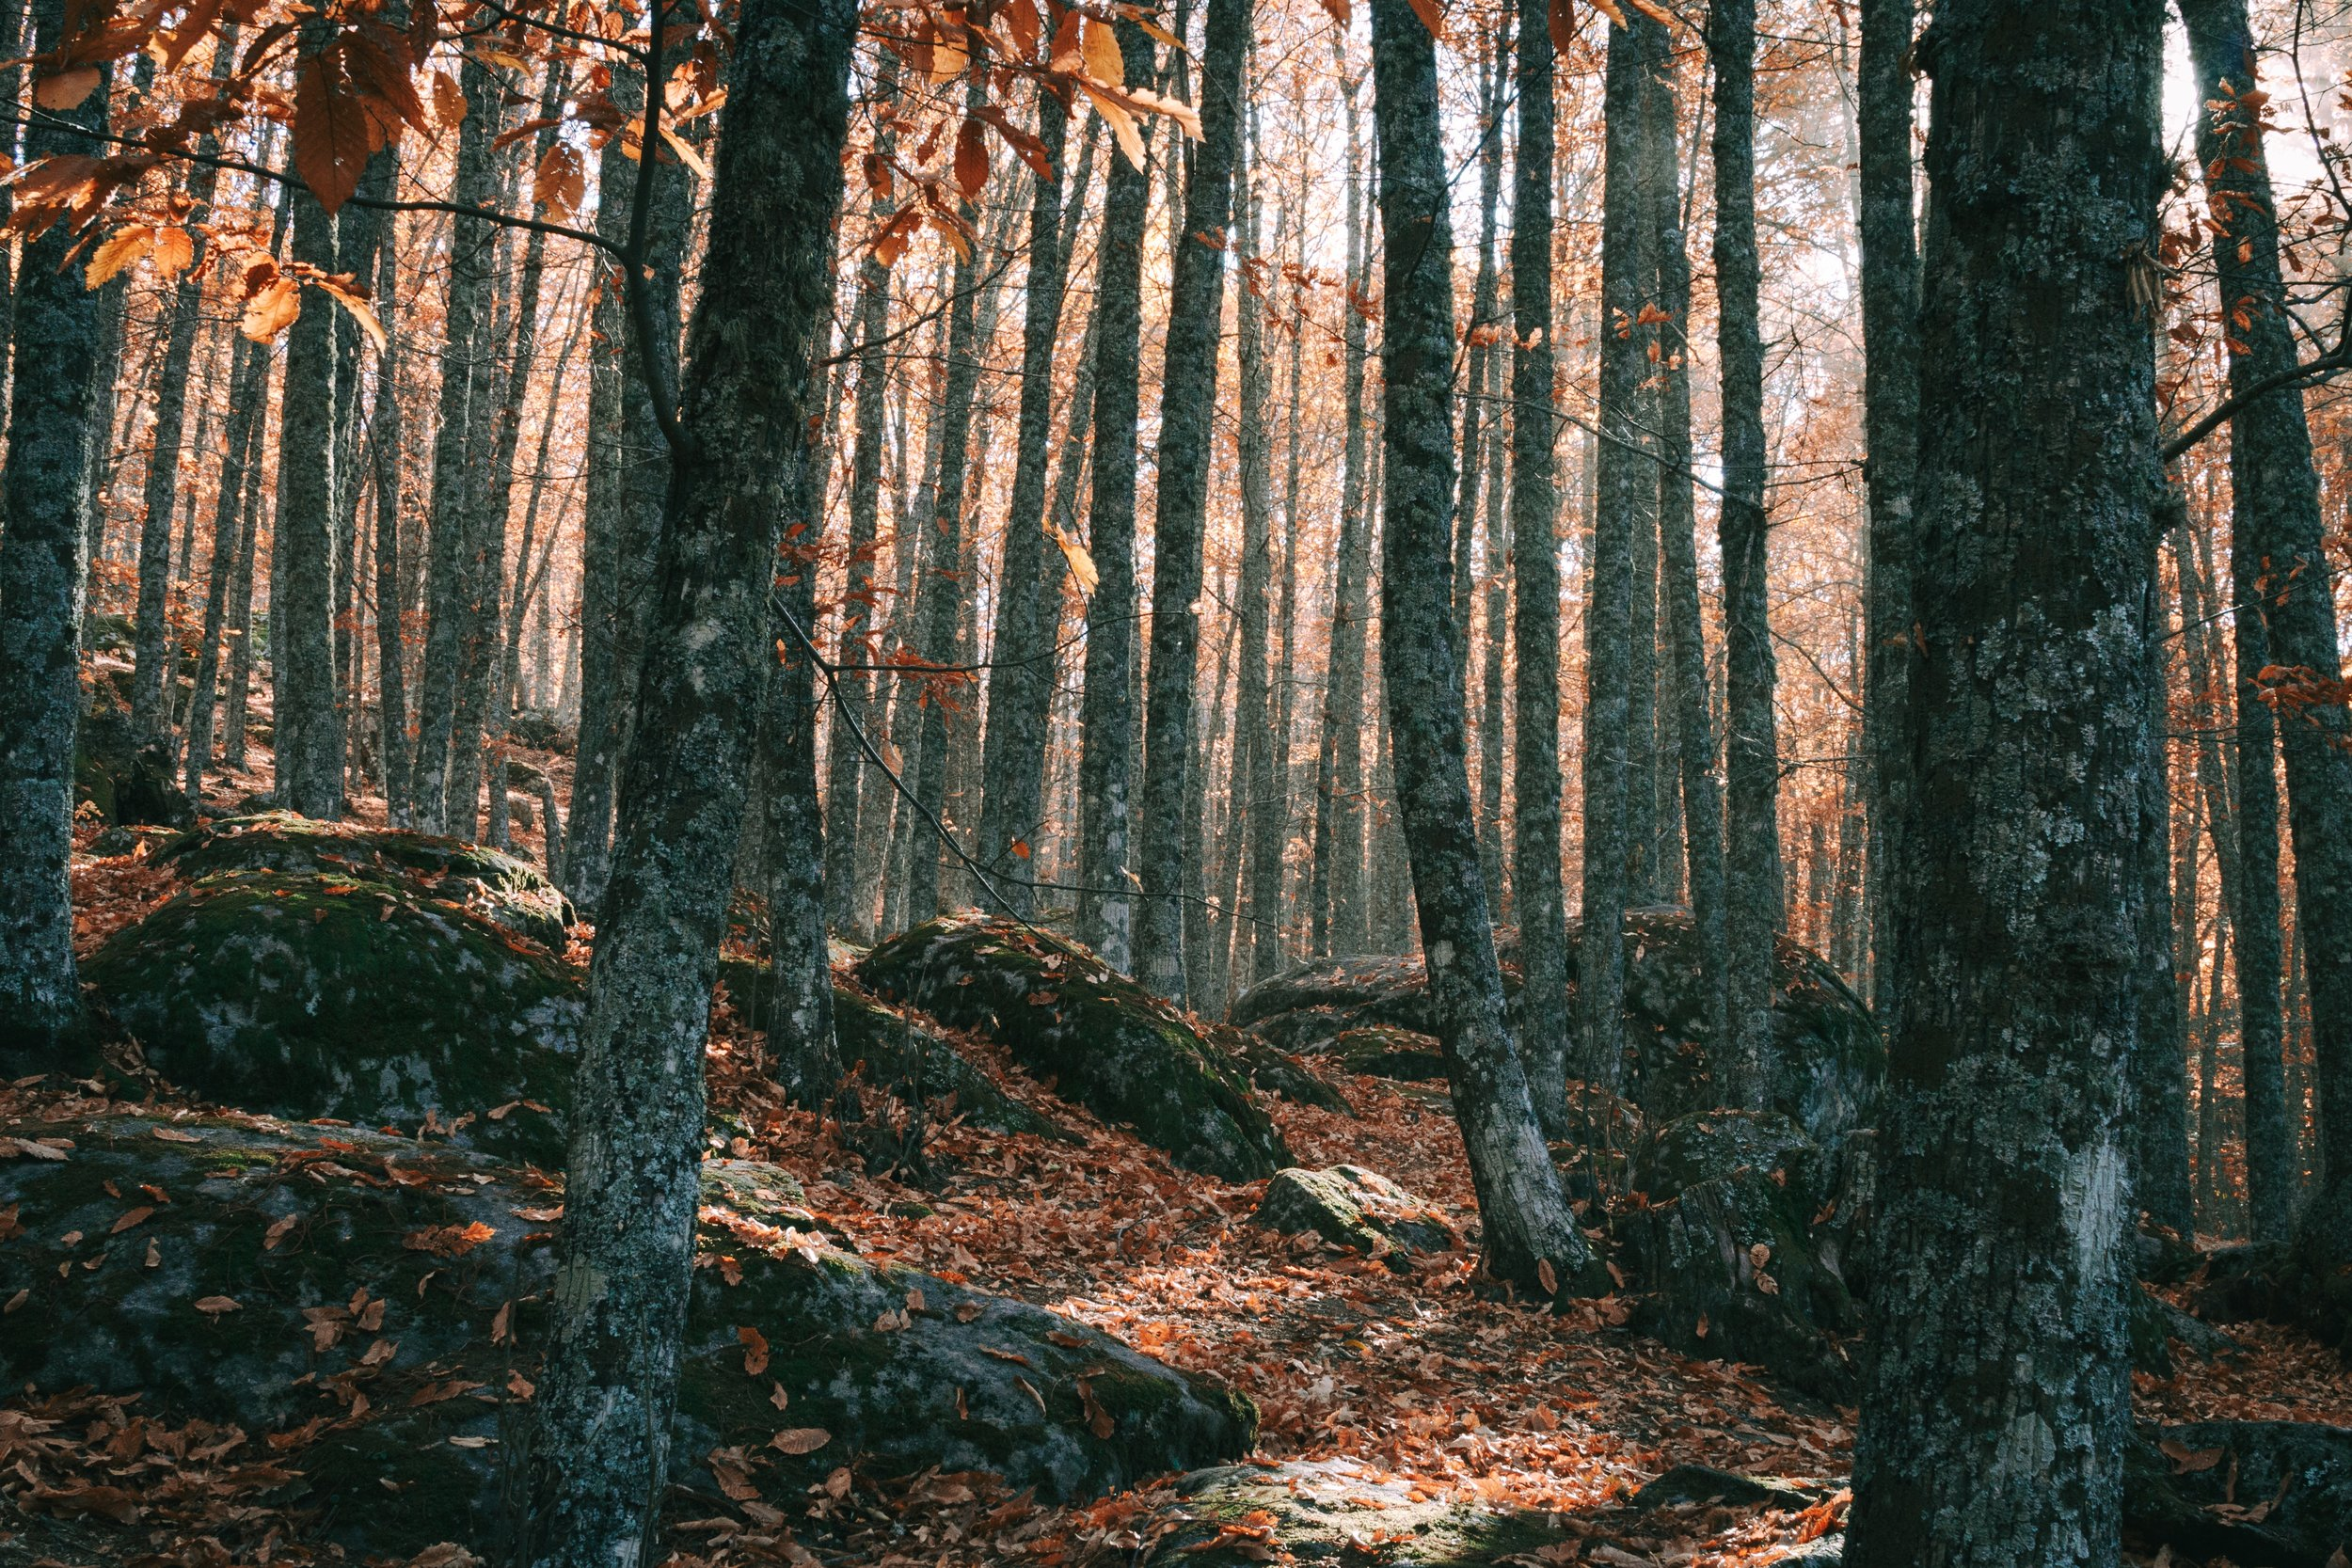 The Ancient Beech Forests - The Forests of Cimini Mountains is one of the most magnificent and impressive woods in central Italy and one of the rarest examples in Europe of